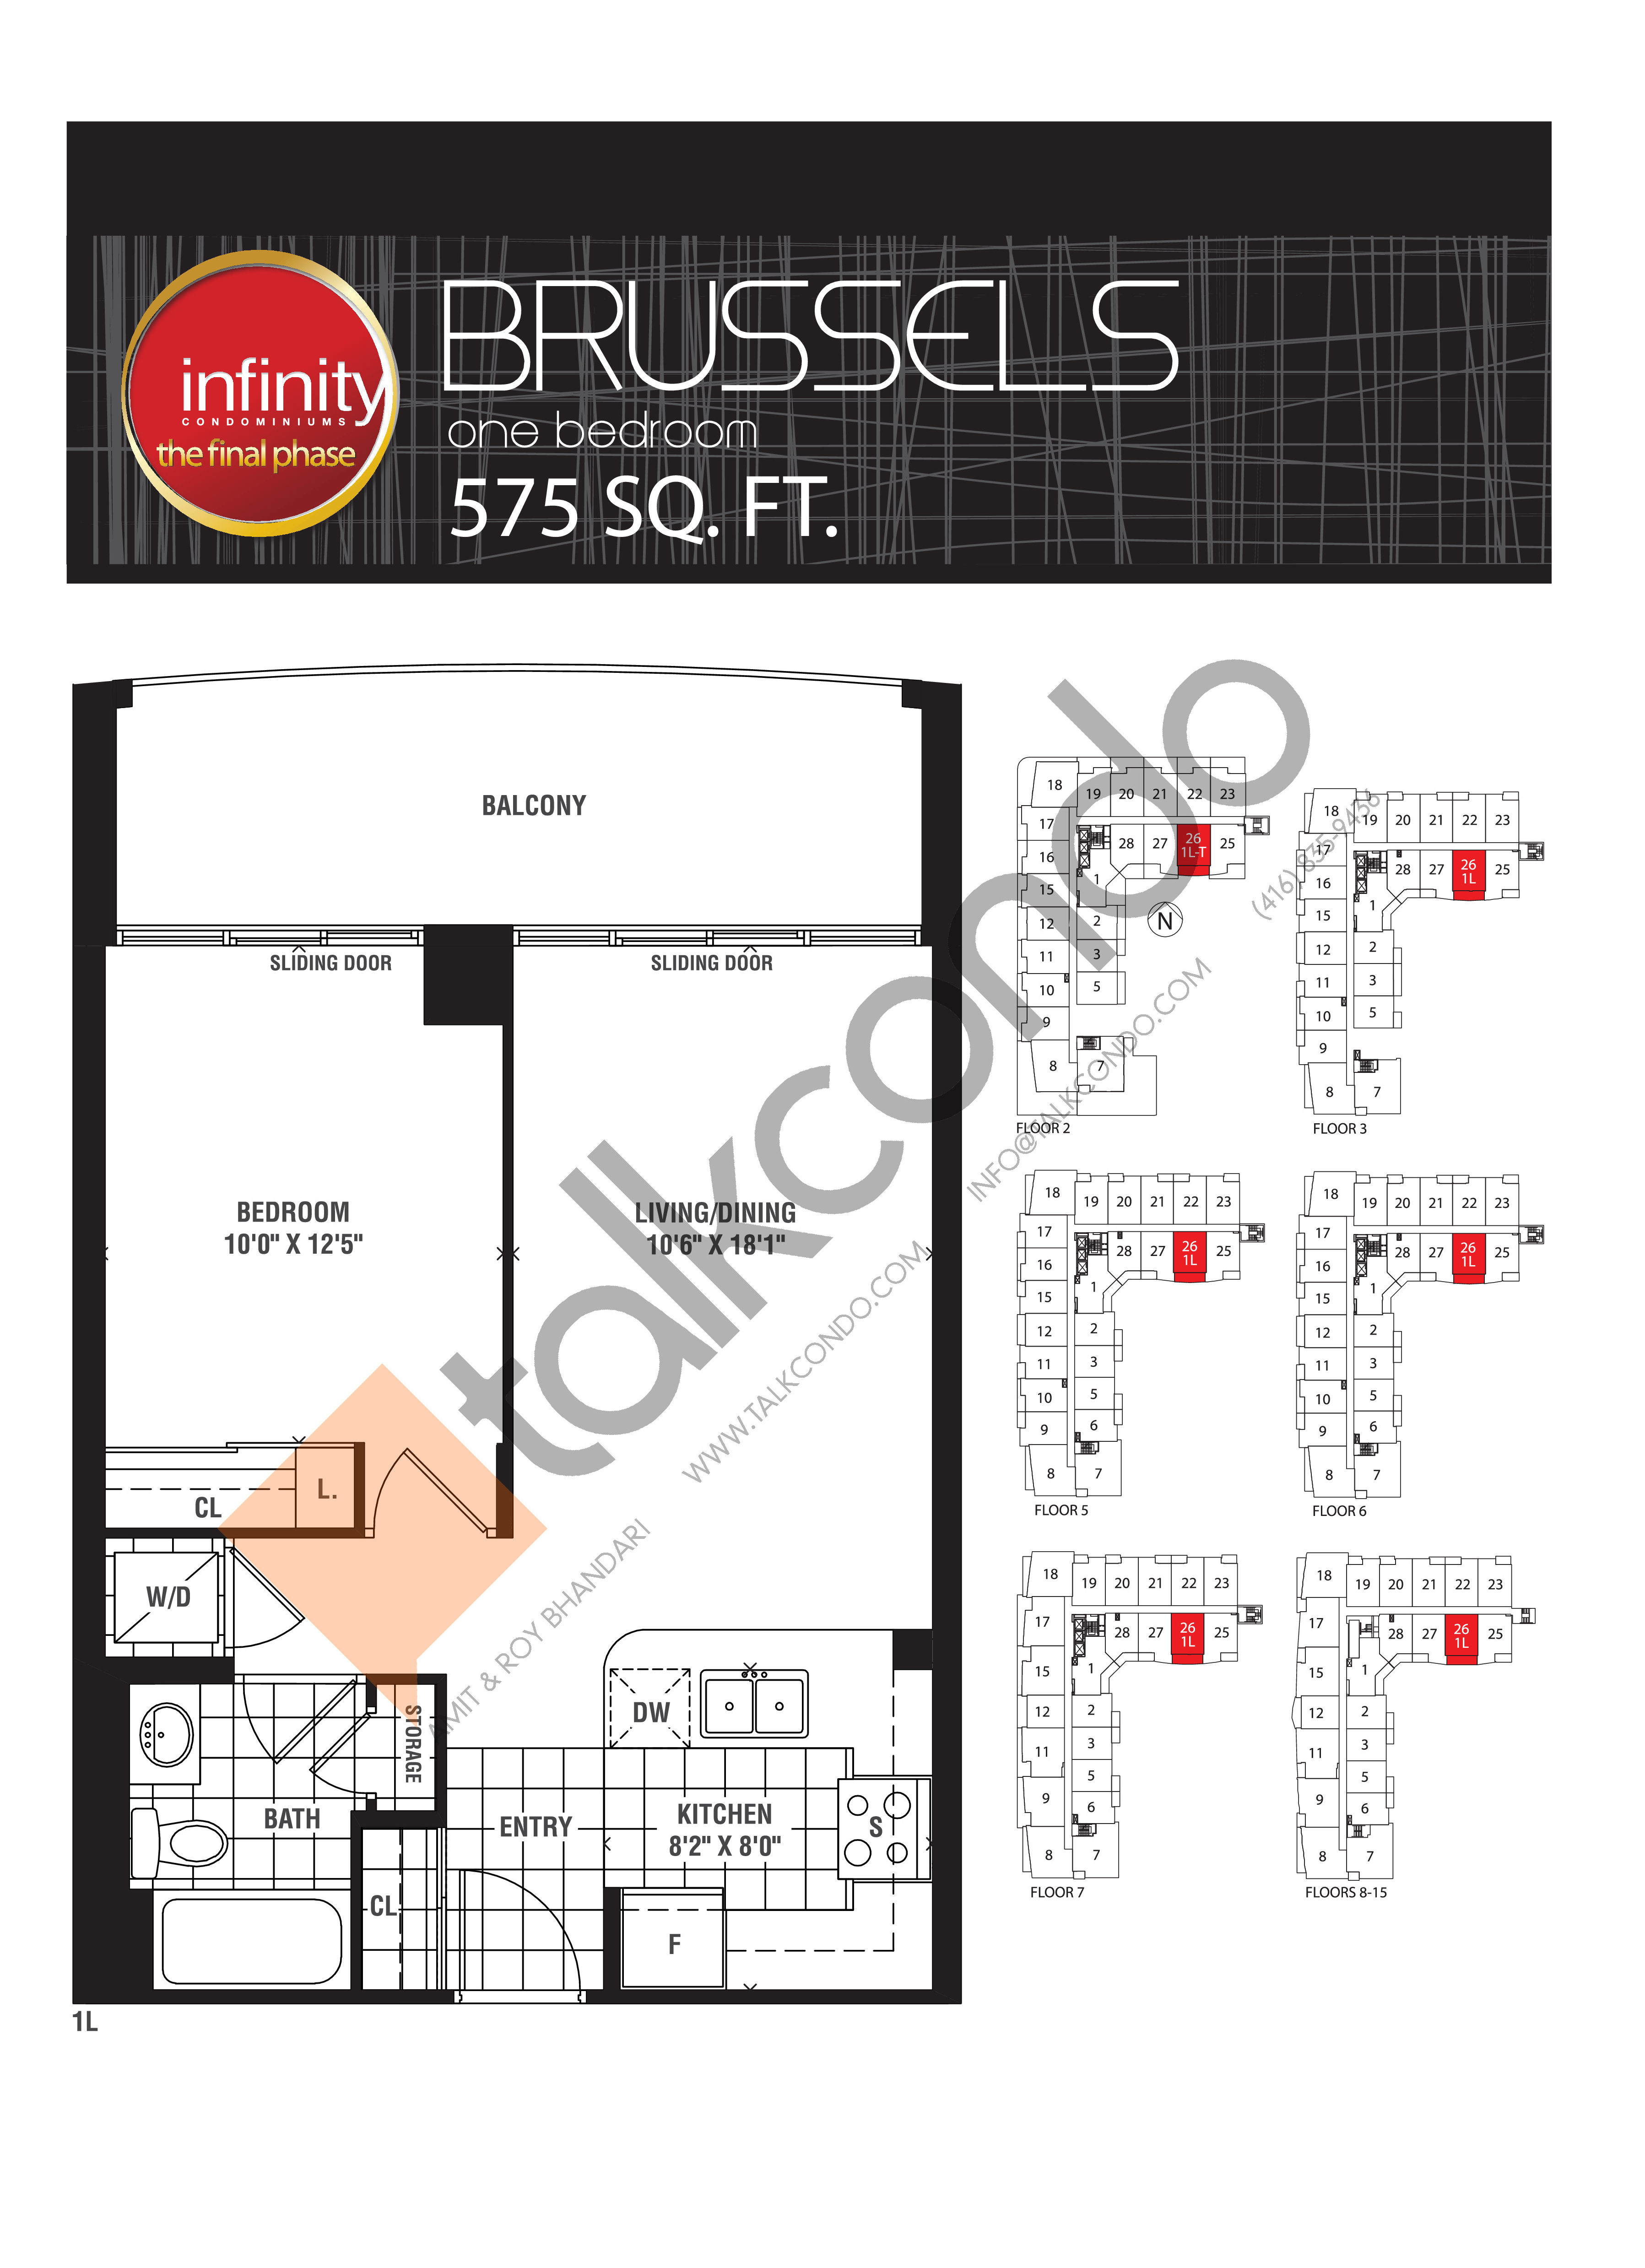 Brussels Floor Plan at Infinity: The Final Phase Condos - 575 sq.ft